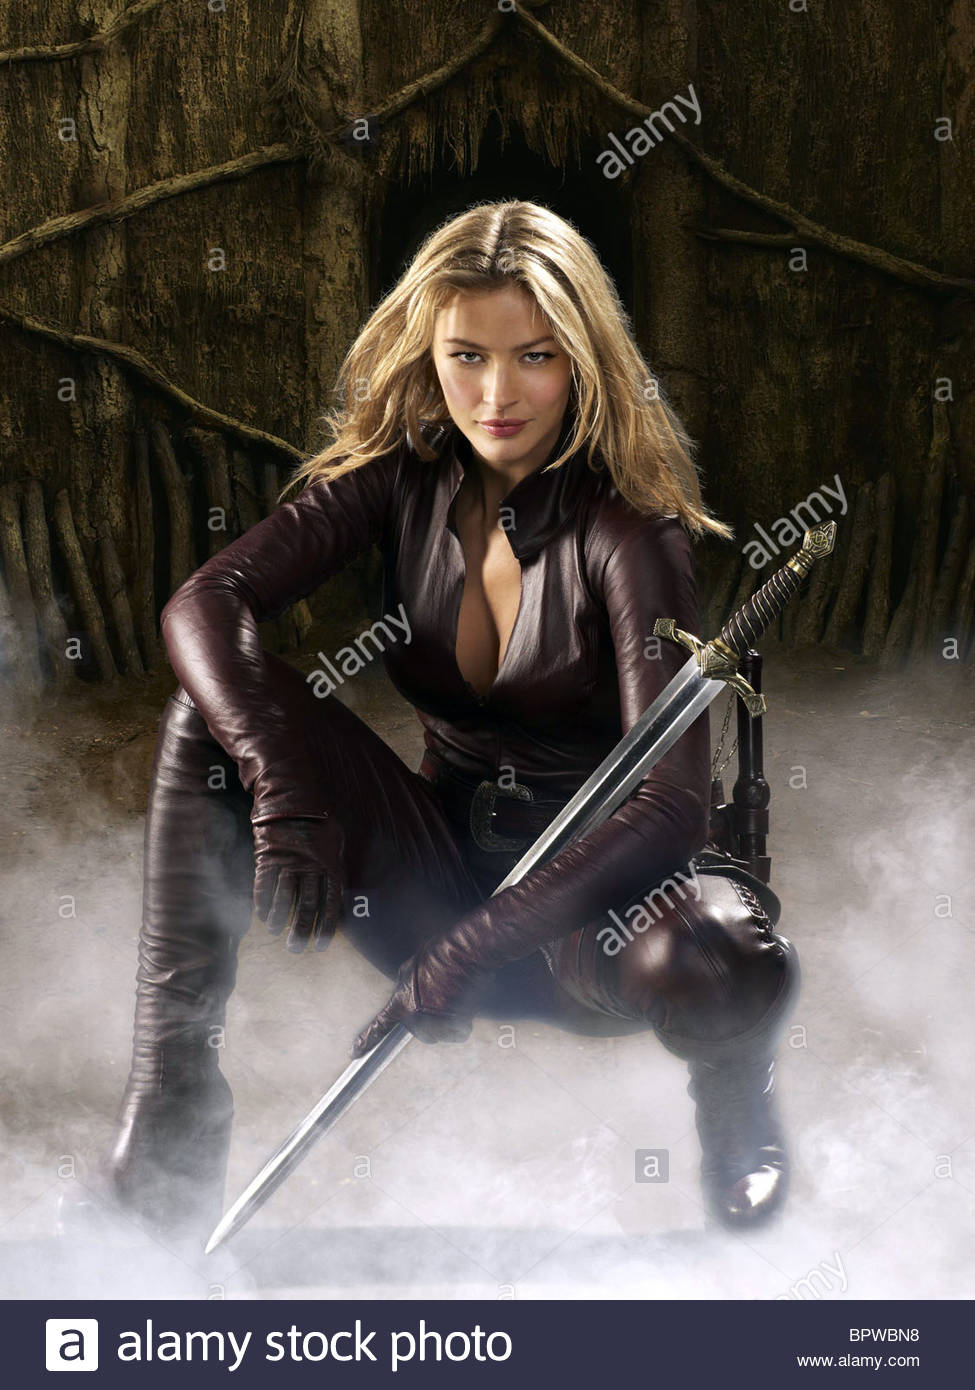 Communication on this topic: Antonie Hegerlikova, tabrett-bethell/